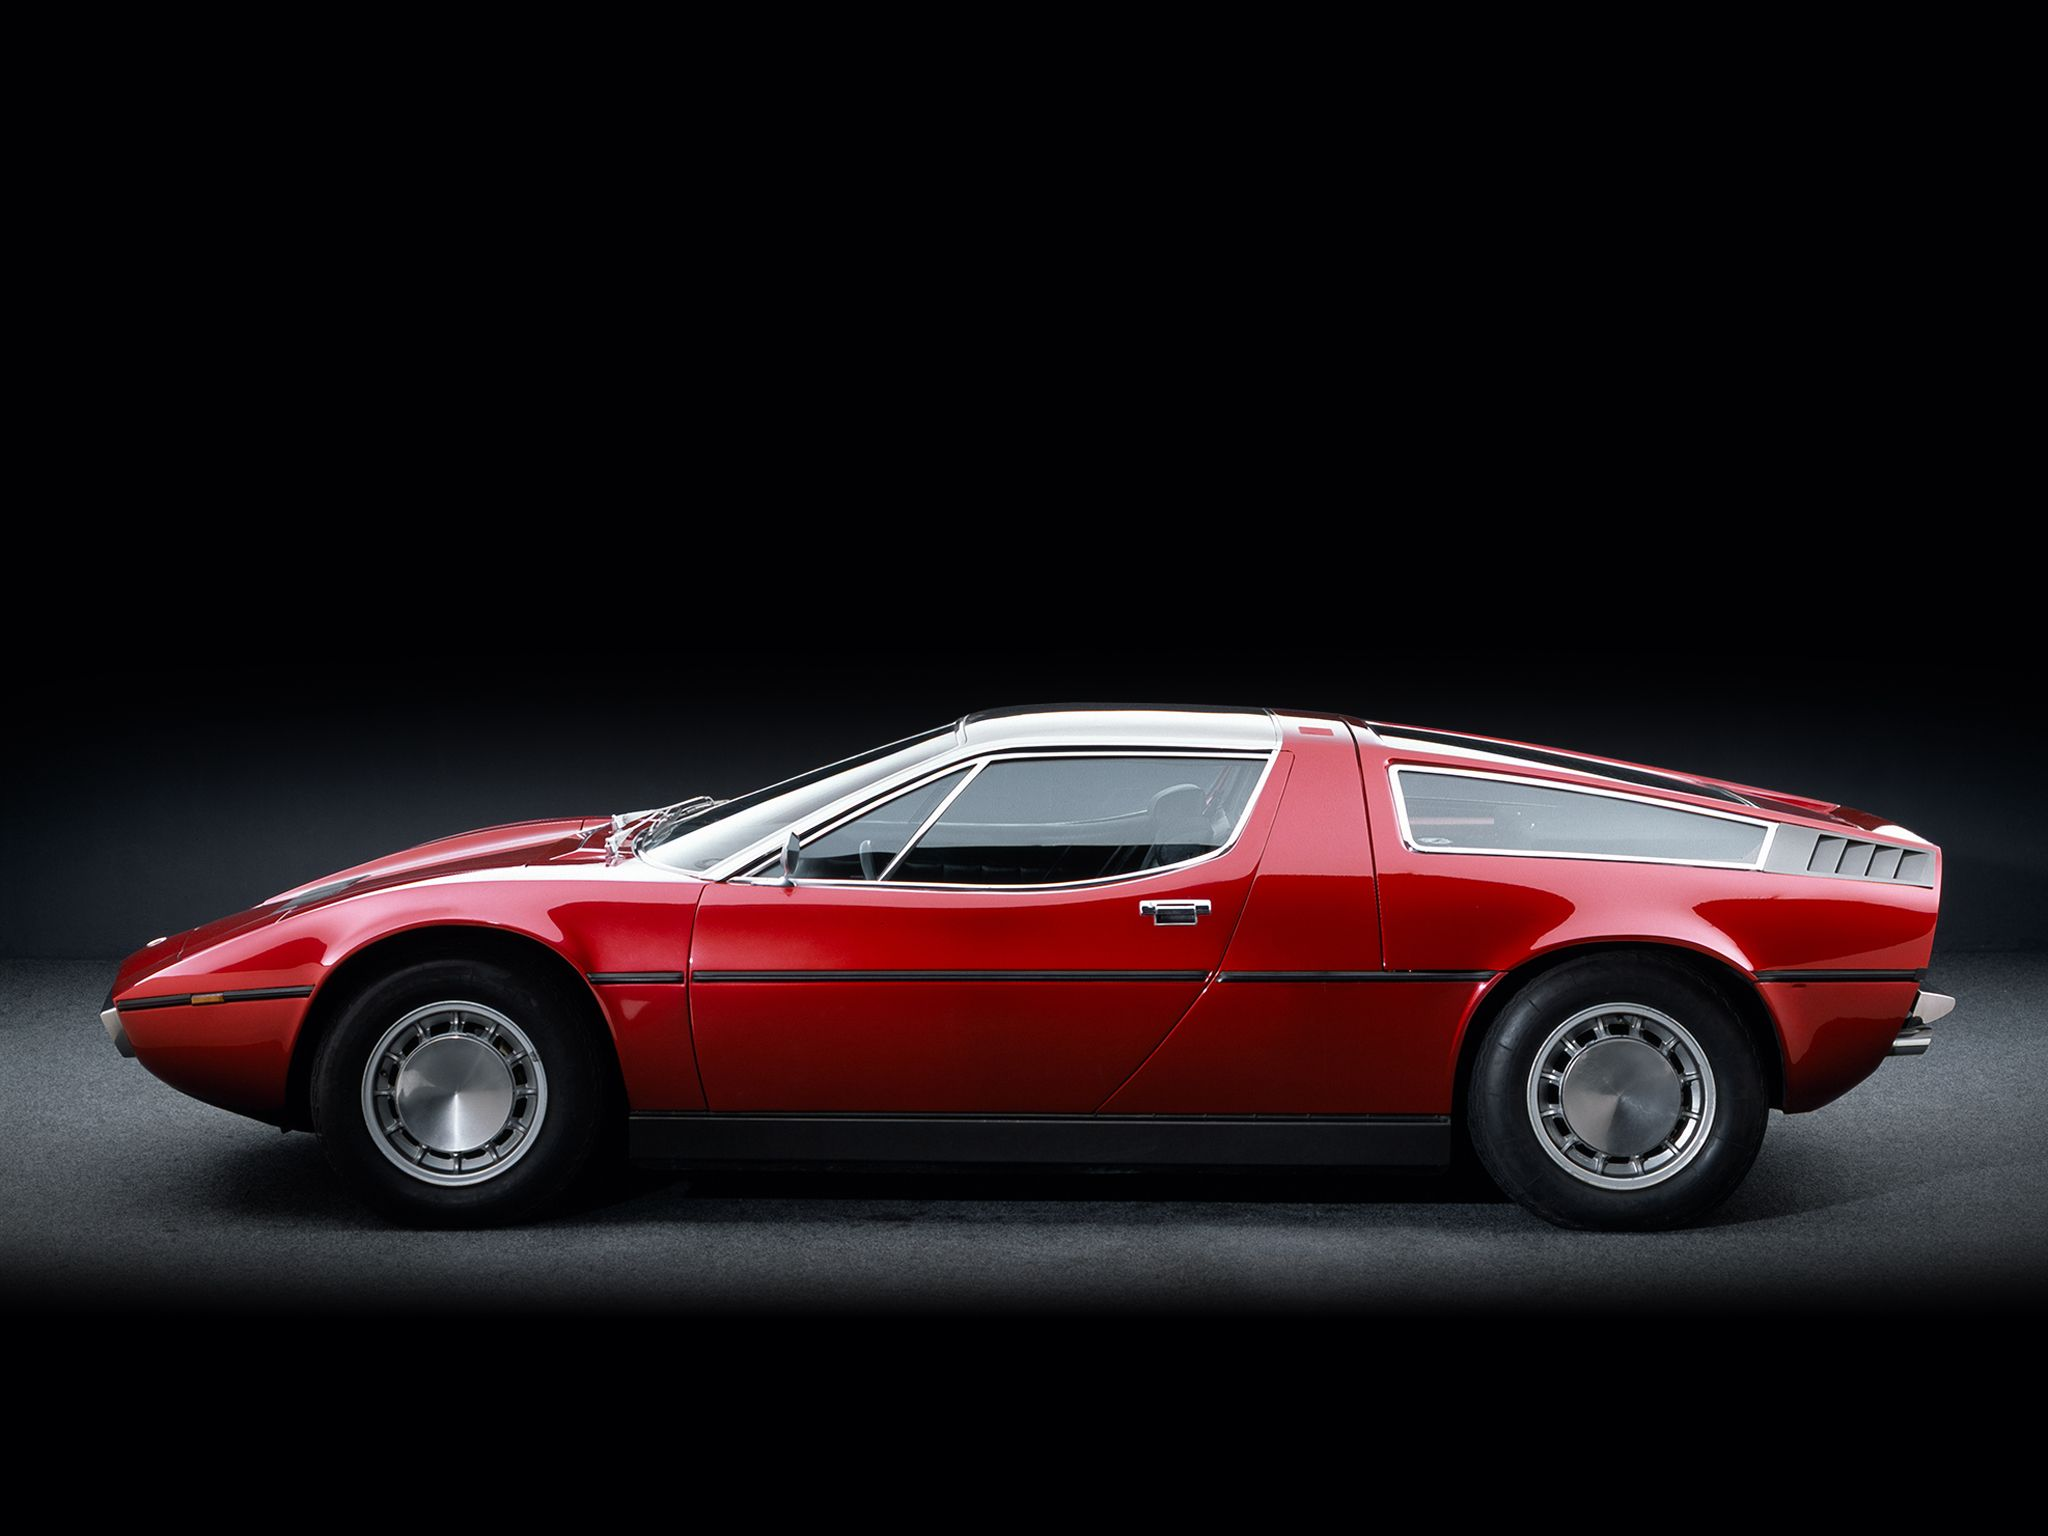 sleek and powerful the maserati bora considered by some to be the pinnacle